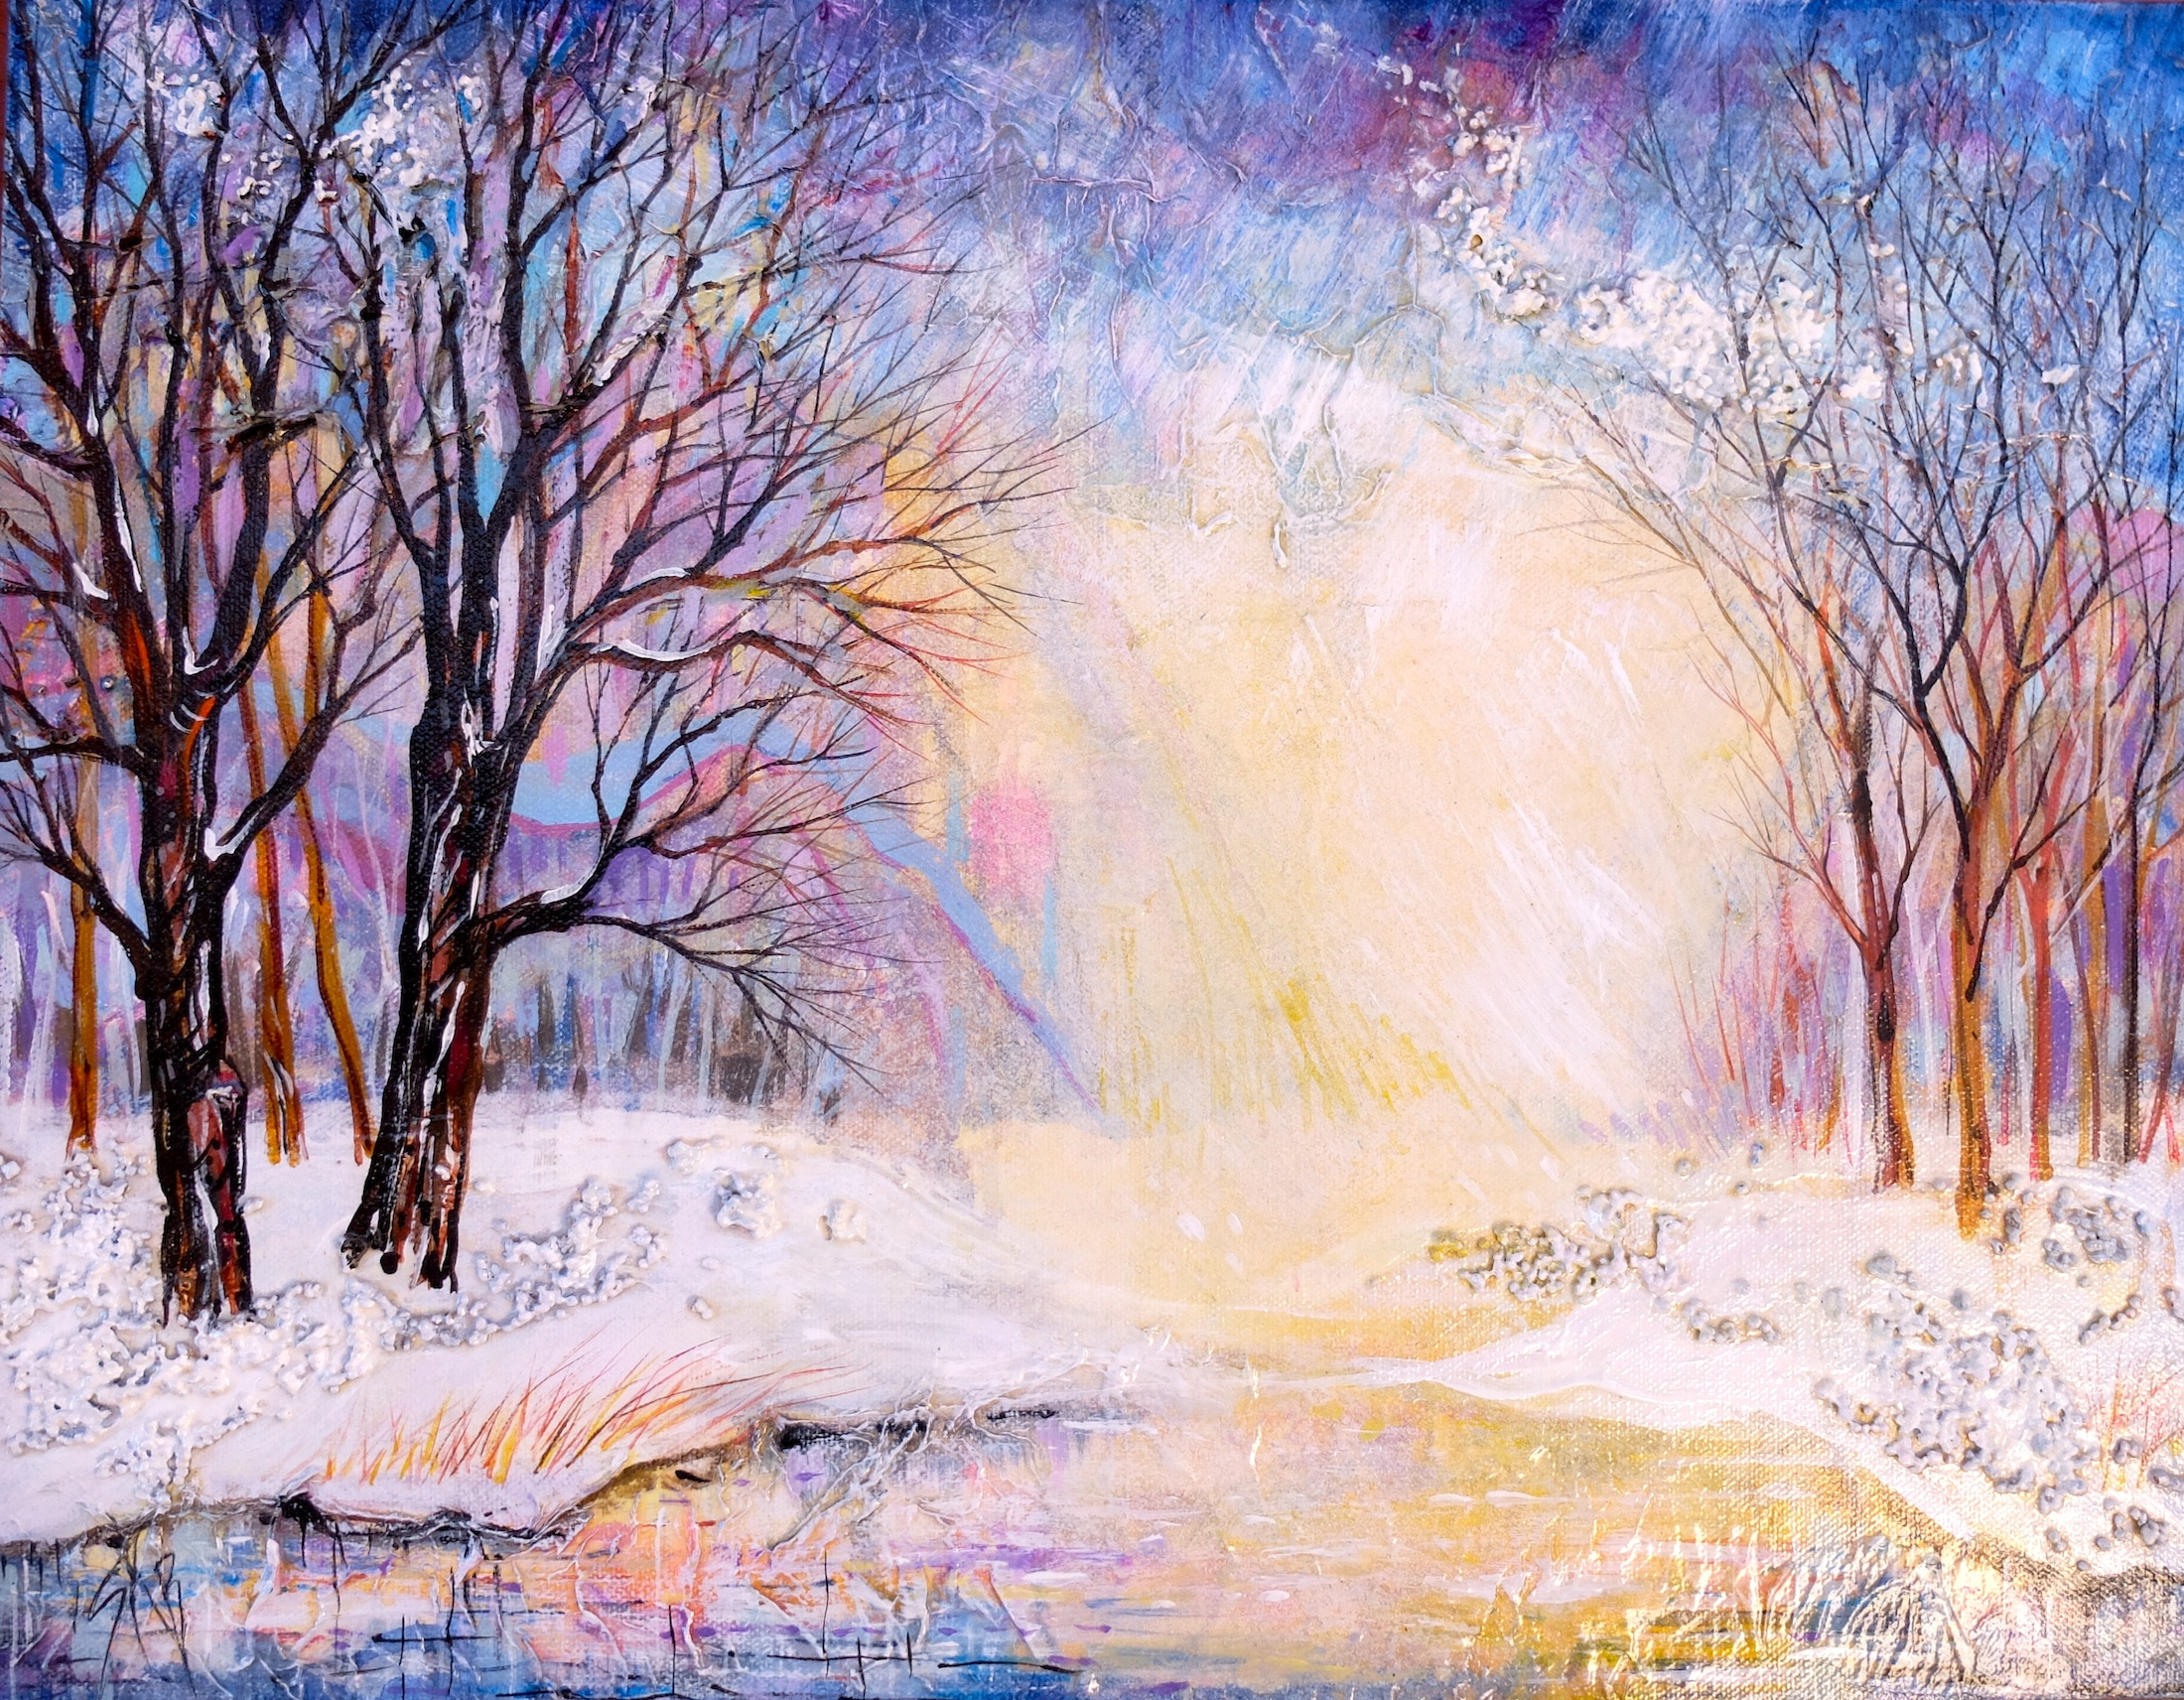 https://sparksgallery.com/wp-content/uploads/2015/11/Sherry-Krulle-Beaton-Early-April-Snow.jpg